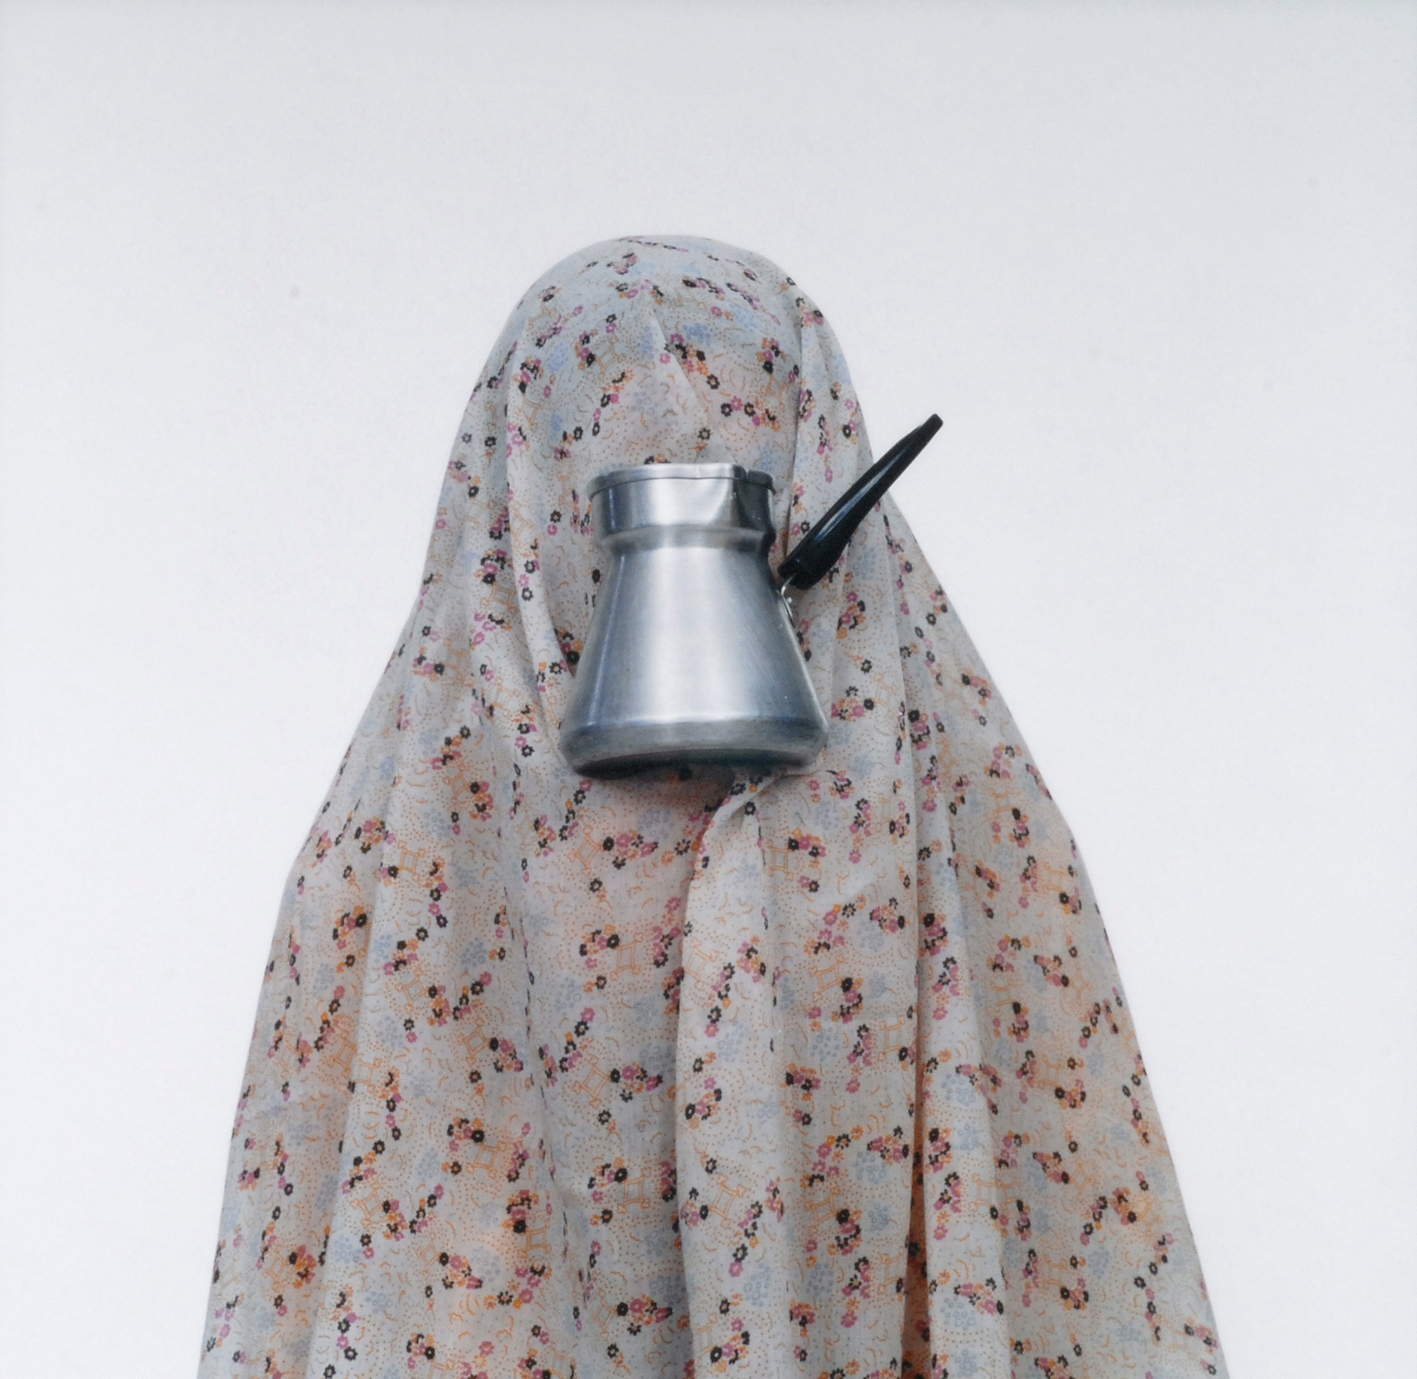 Shadi Ghadirian, Like Everyday #13, 2002.